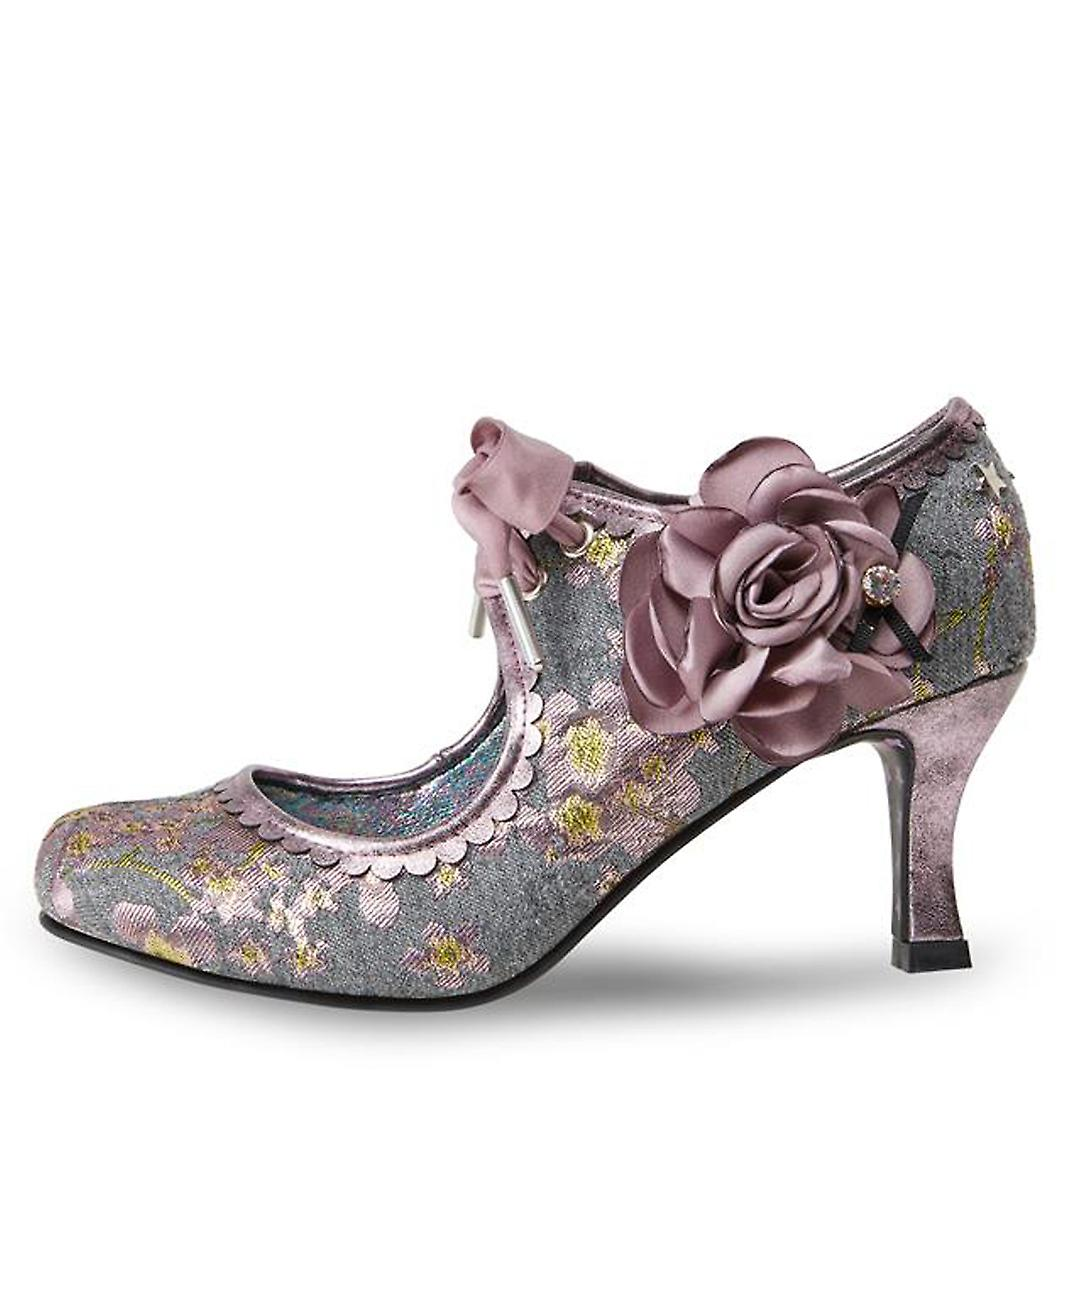 Joe Browns Couture Orla Blossom Print Shoes